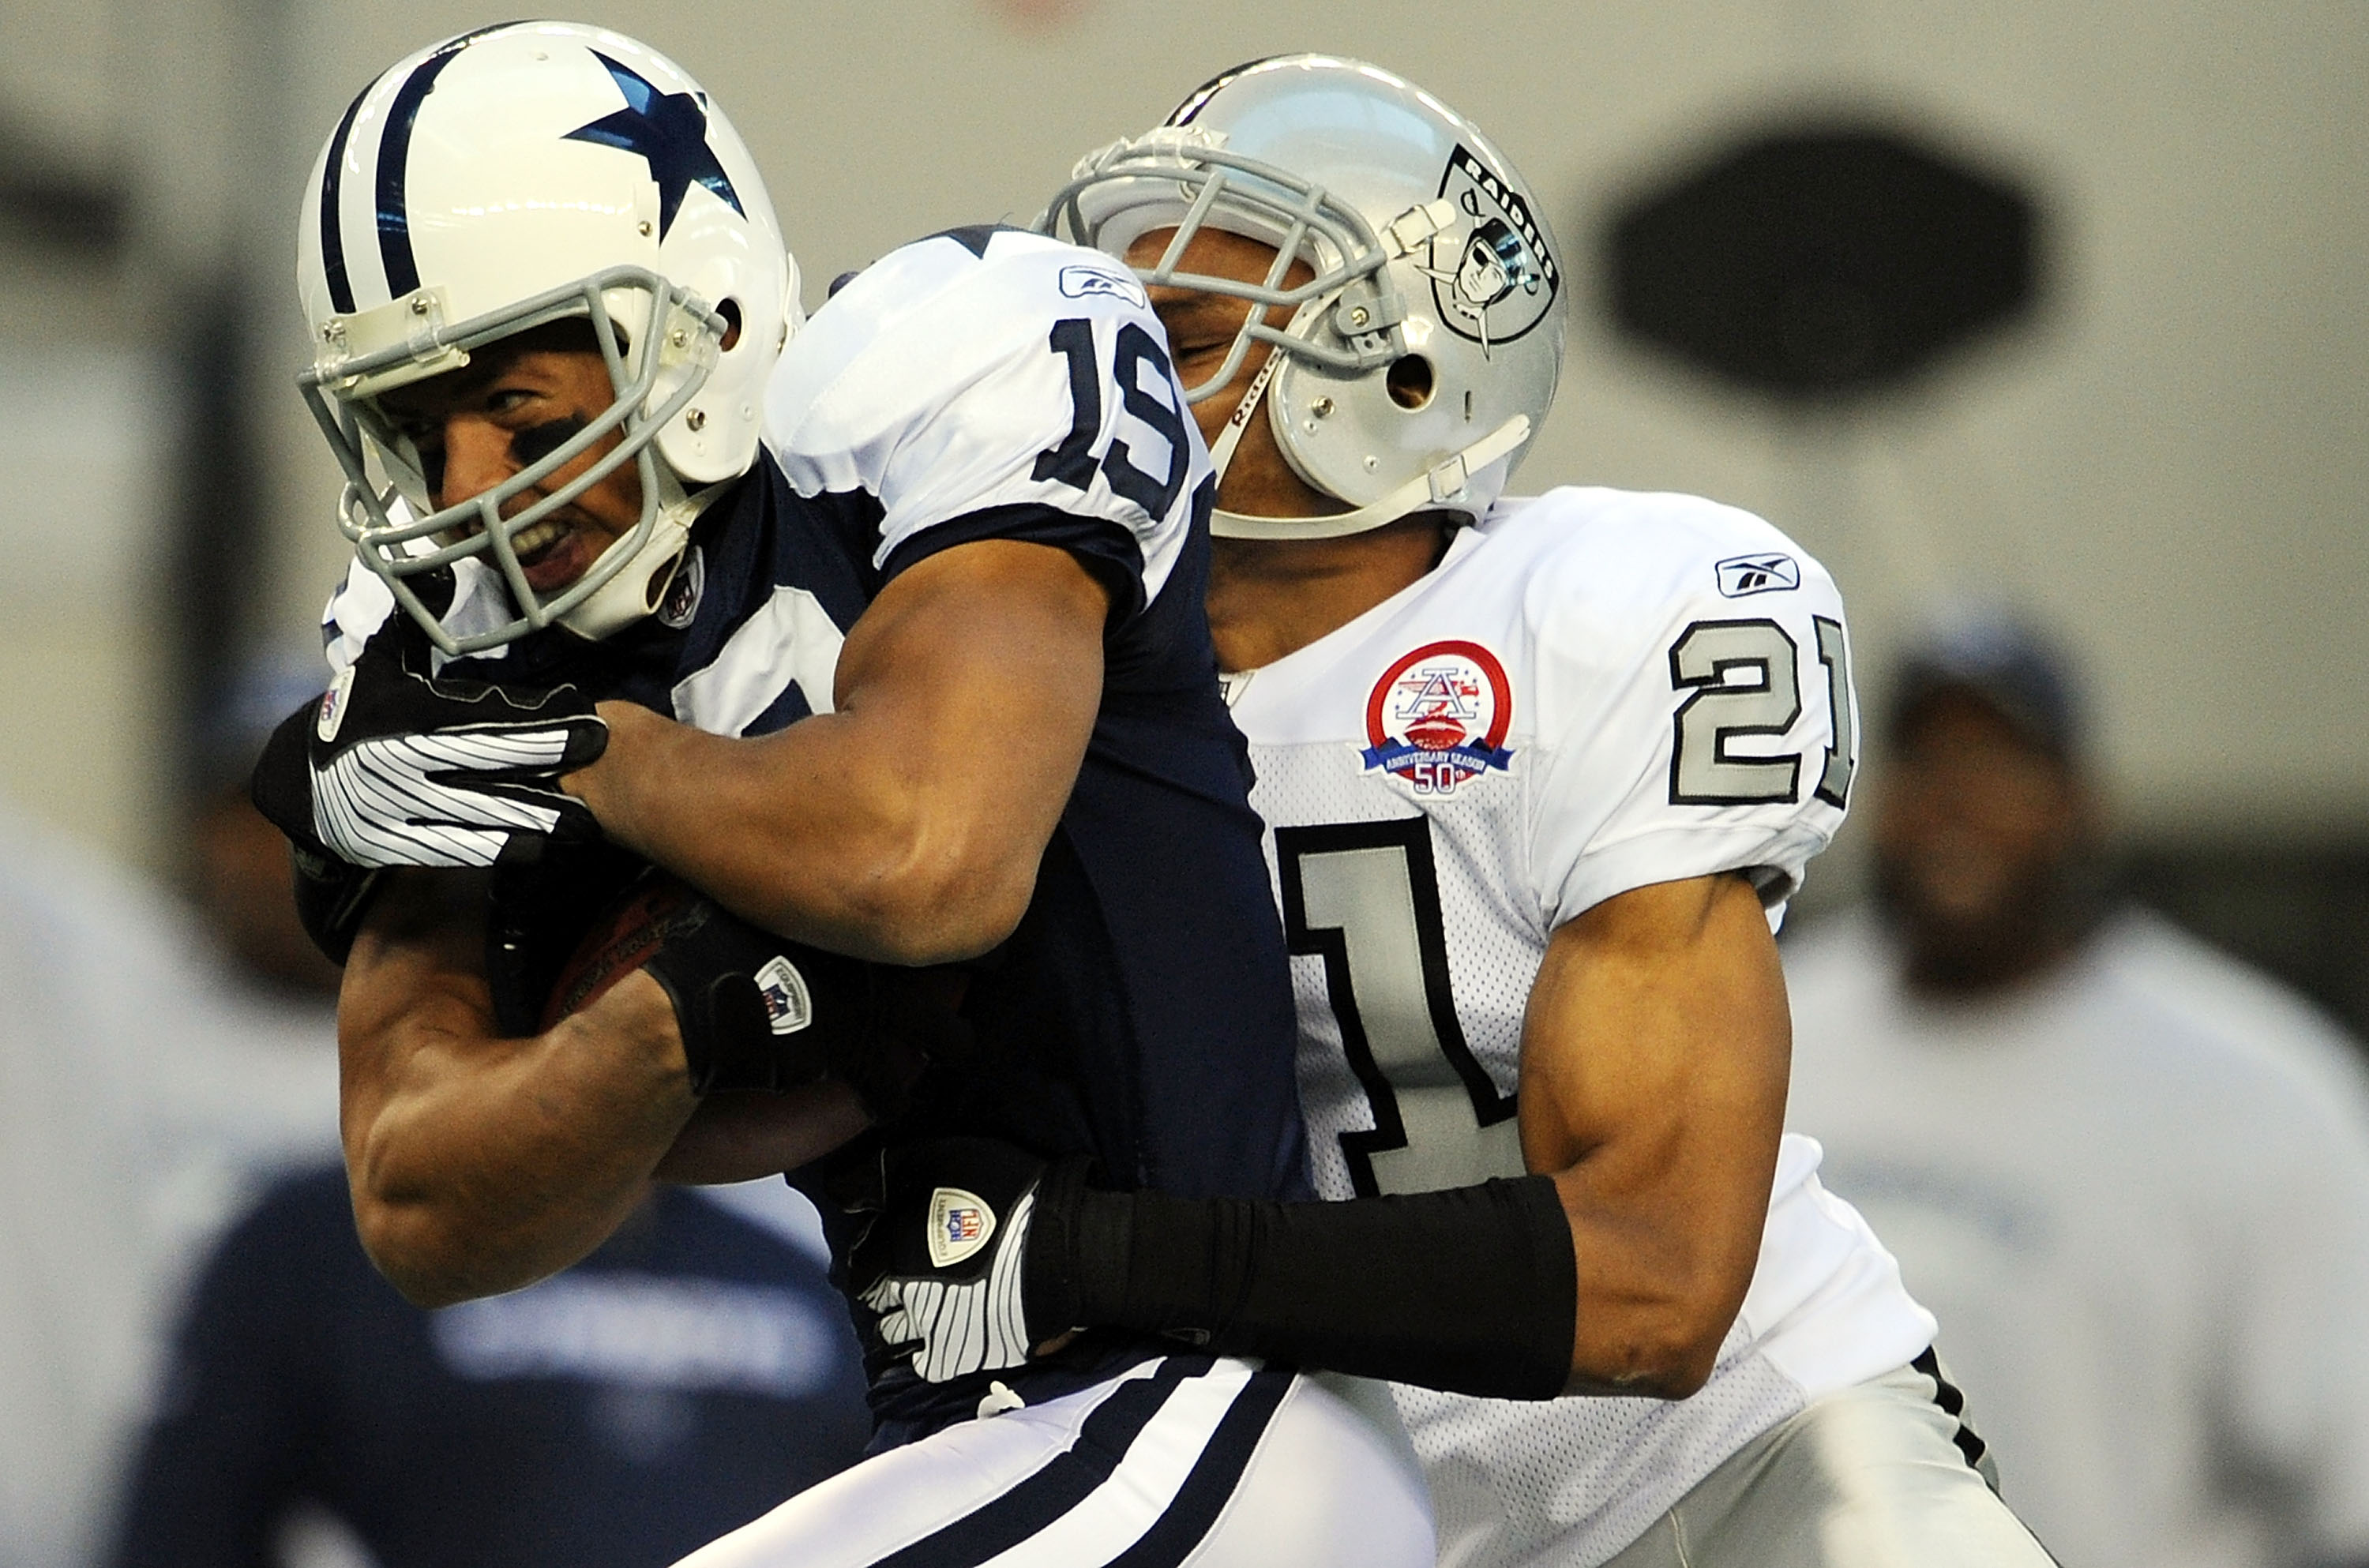 ARLINGTON, TX - NOVEMBER 26:  Wide receiver Miles Austin #19 of the Dallas Cowboys runs the ball against Nnamdi Asomugha #21 of the Oakland Raiders at Cowboys Stadium on November 26, 2009 in Arlington, Texas.  (Photo by Ronald Martinez/Getty Images)